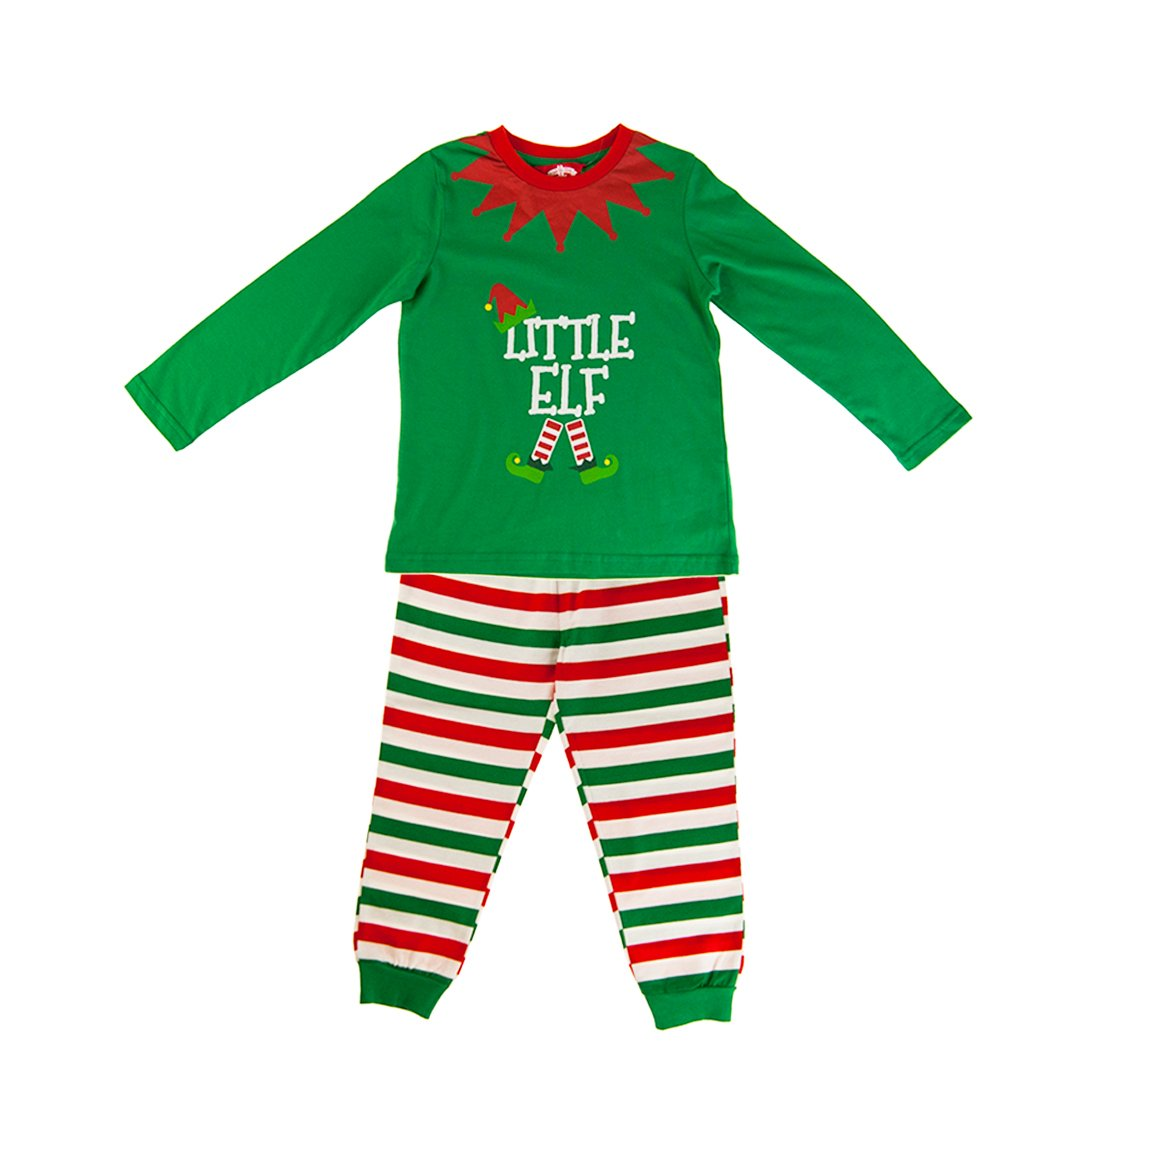 09ea858bba9d Made By Elves Elf Pyjamas Christmas Family PJs - Dad